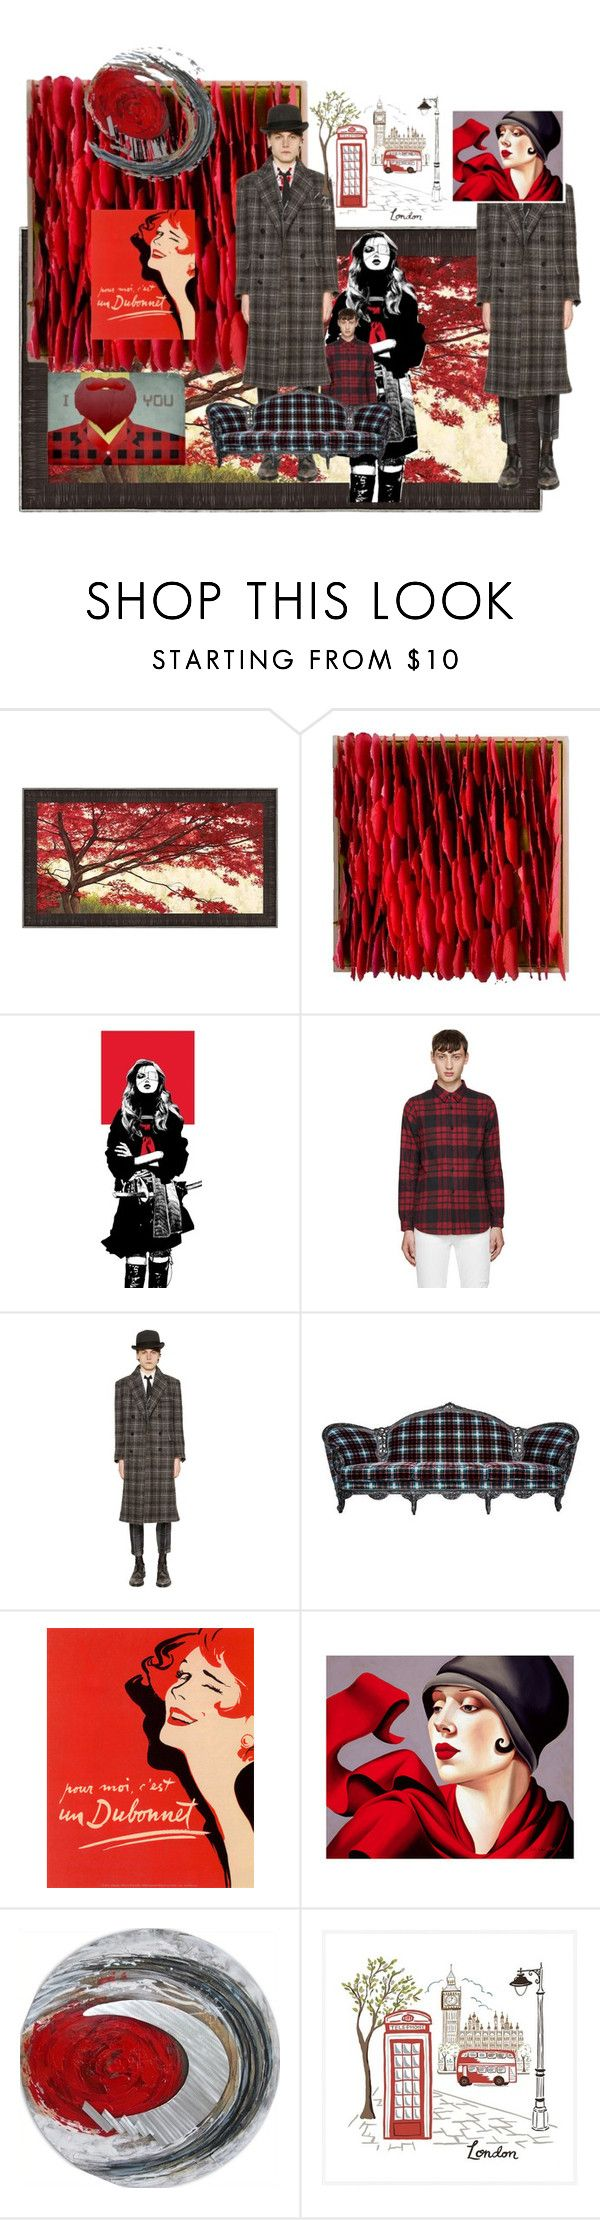 """""""Untitled #1447"""" by bethonepage ❤ liked on Polyvore featuring John Elliott, Thom Browne, Jean-Paul Gaultier, Yosemite Home Décor, Pottery Barn, Monde Mosaic, men's fashion, menswear, plaid and WardrobeStaples"""